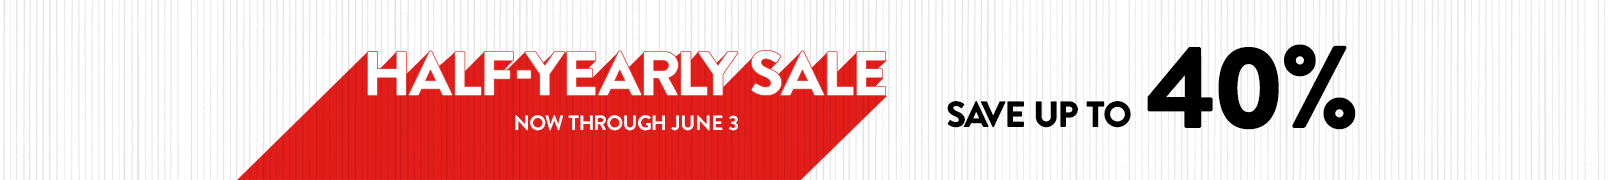 HalfYearly Sale  Save up to 40% through June 3